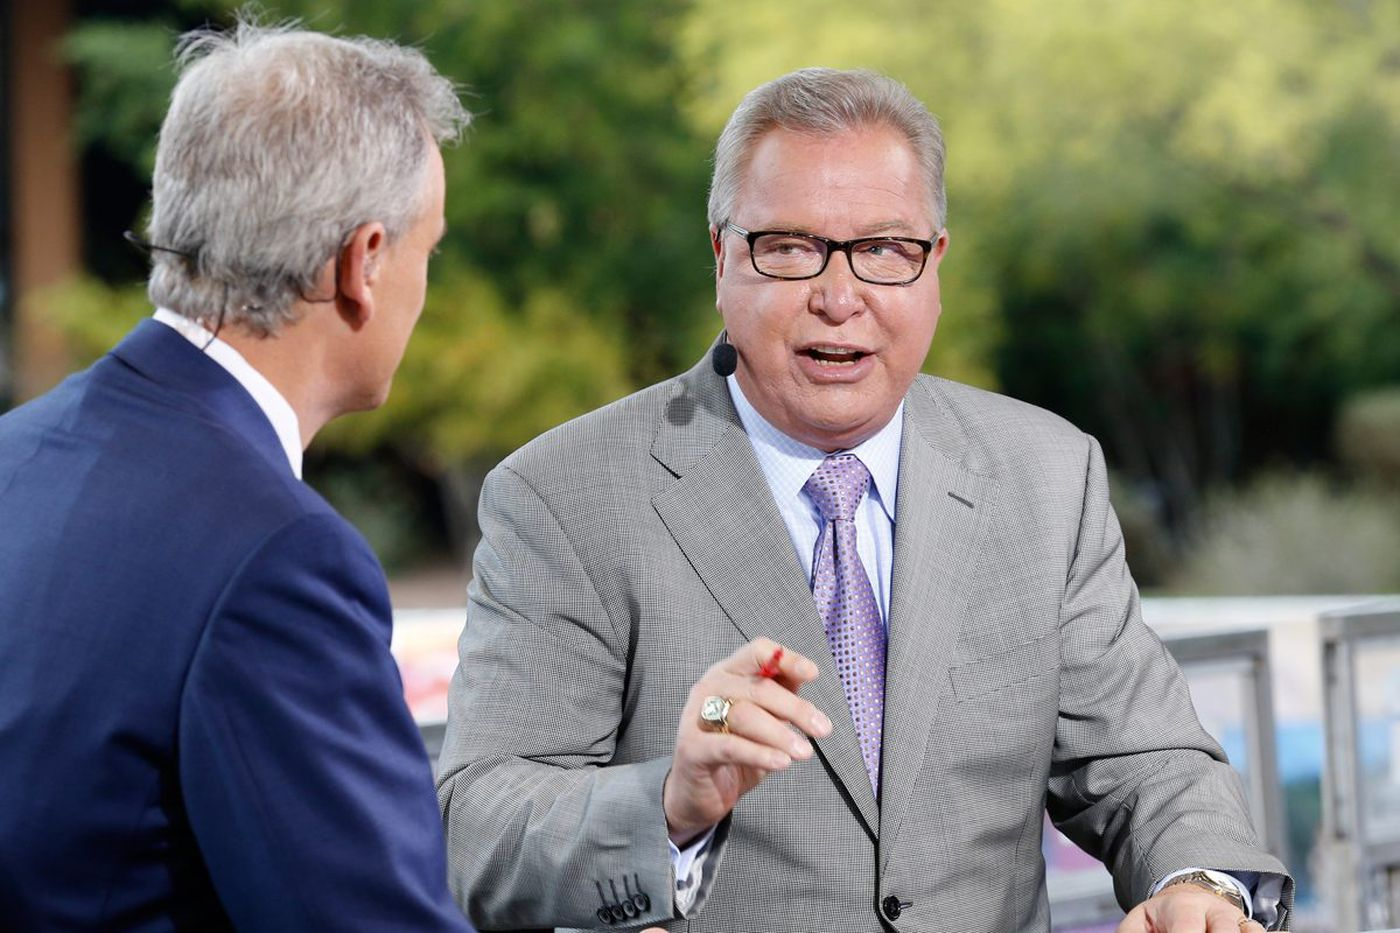 Ron Jaworski is 'in limbo' and unsure of ESPN status